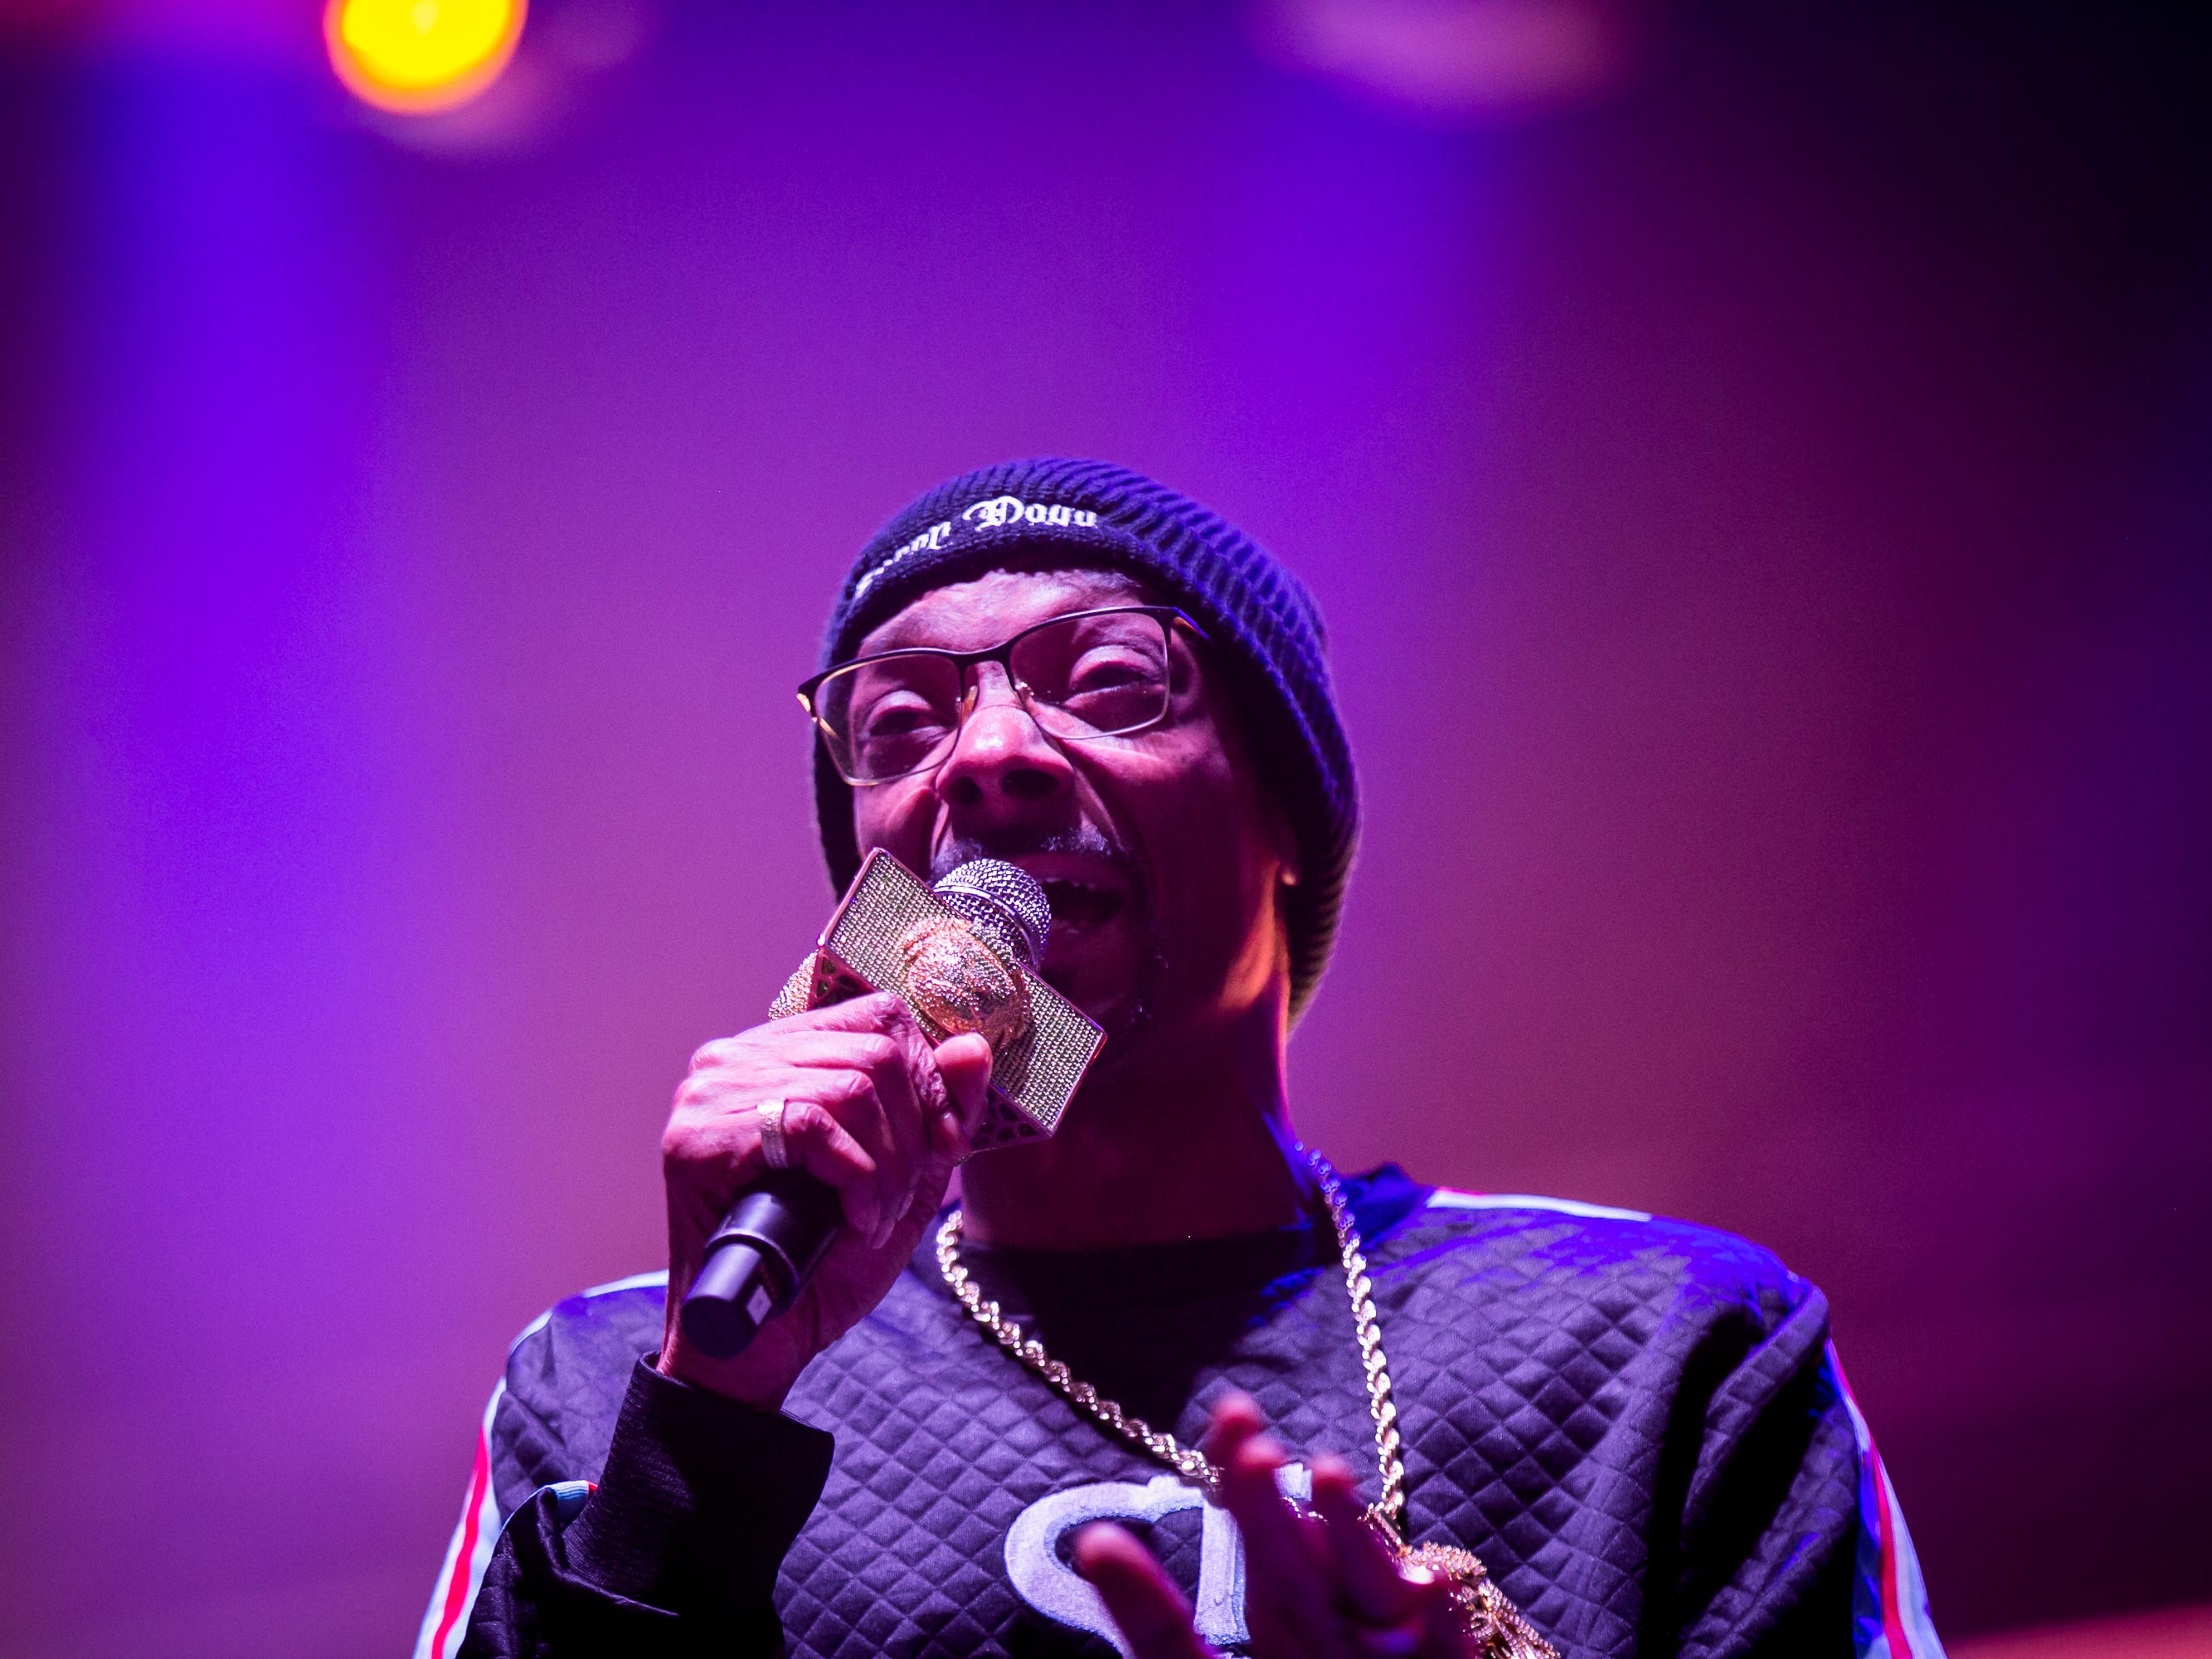 Snoop Dogg performs at Pot of Gold Music Festival at Steele Indian School Park in Phoenix on Friday, March 15.